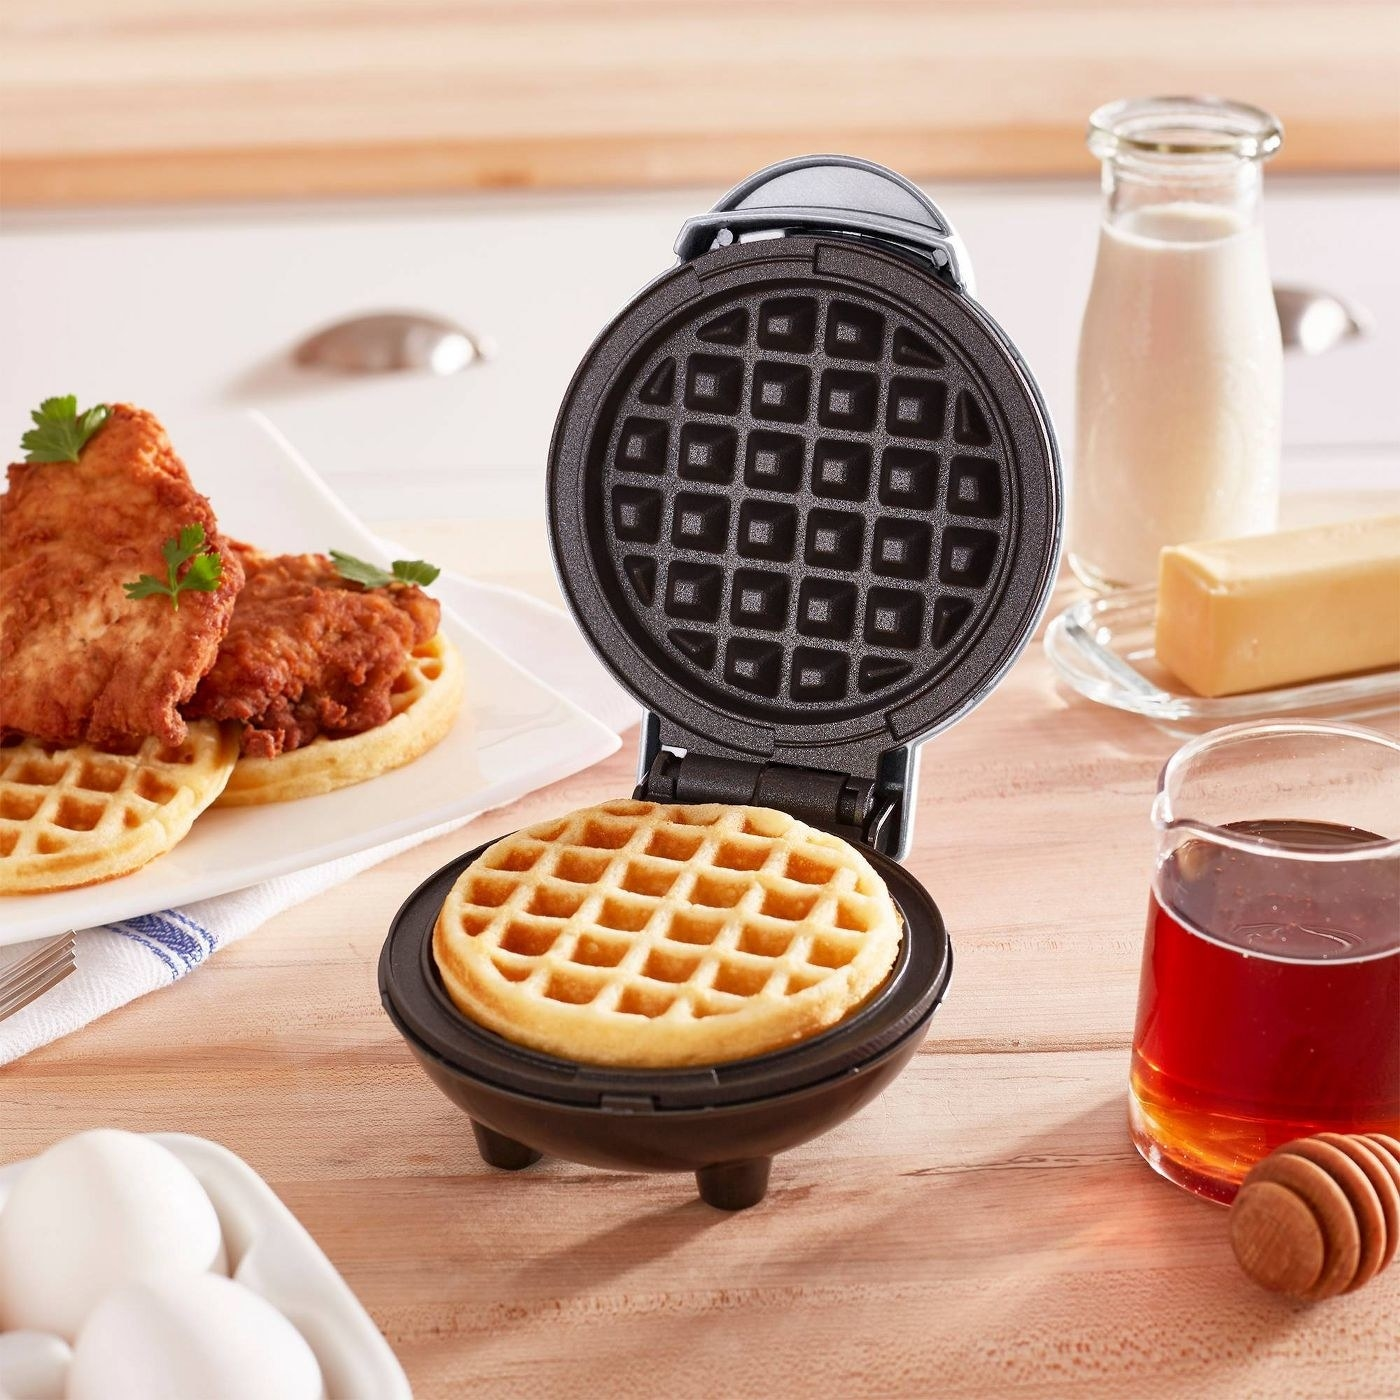 The black mini waffle maker